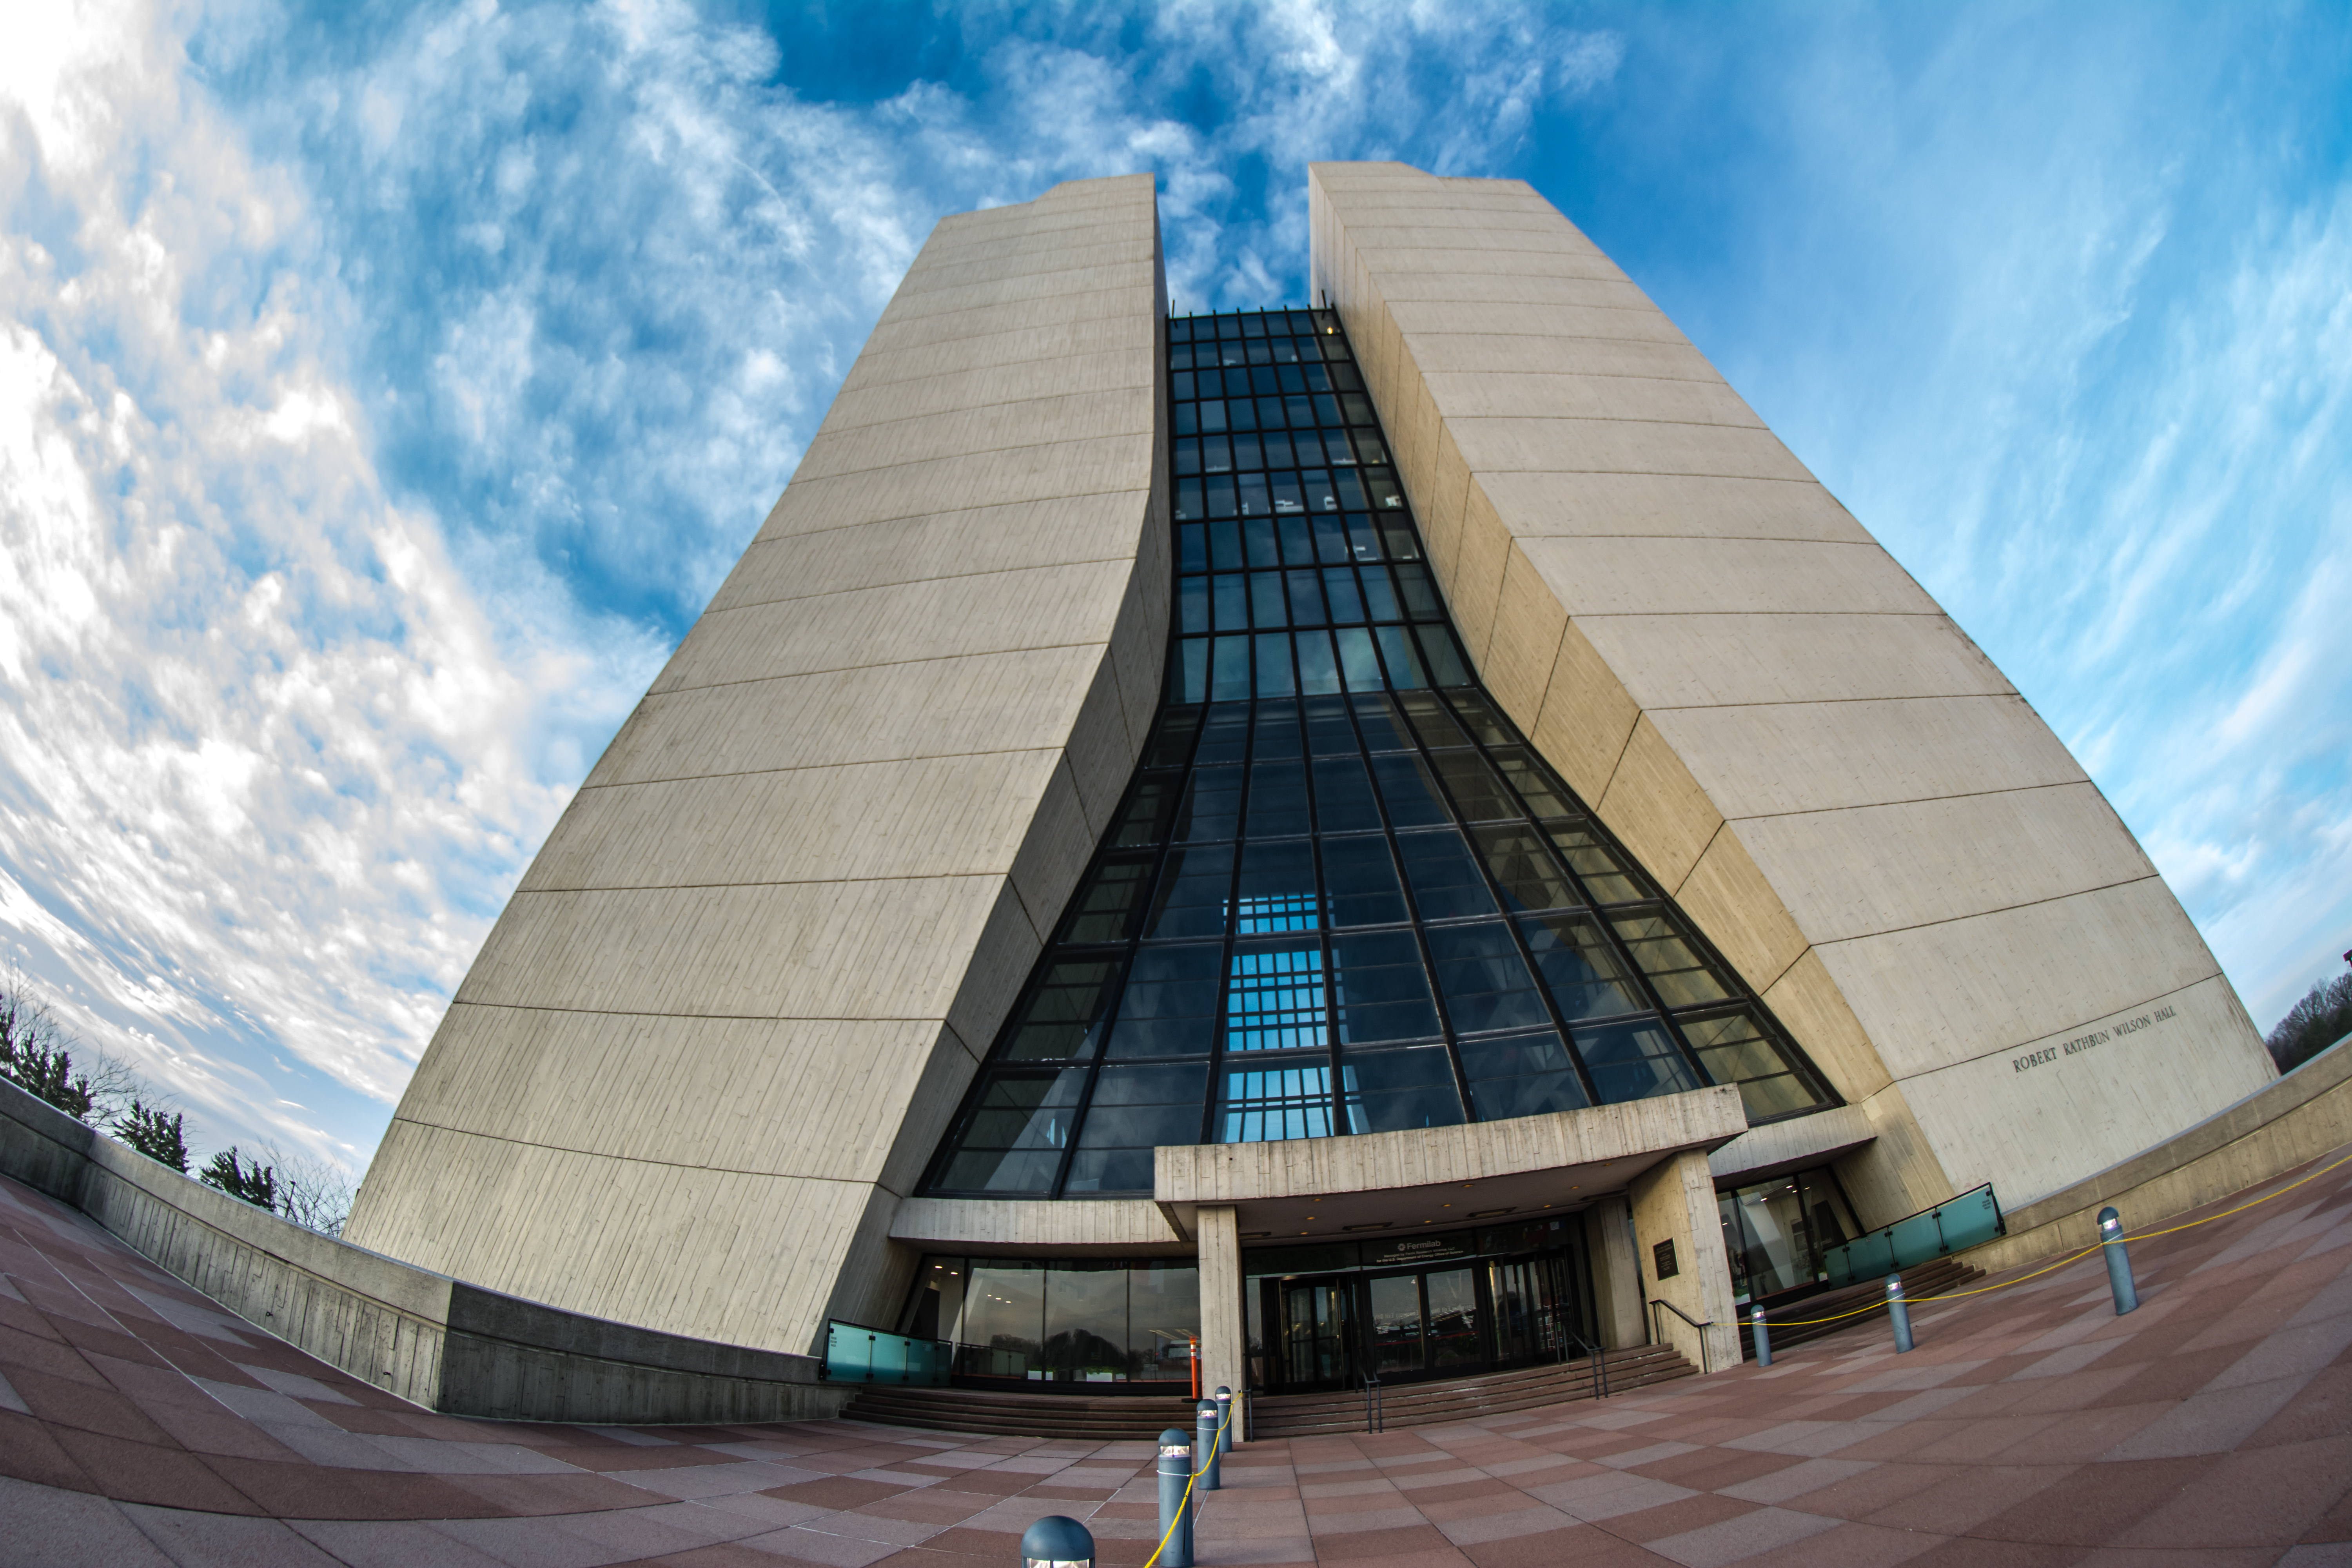 A fisheye lens was used to capture this view of Wilson Hall looking up toward the sky. Photo: Leticia Shaddix, PPD